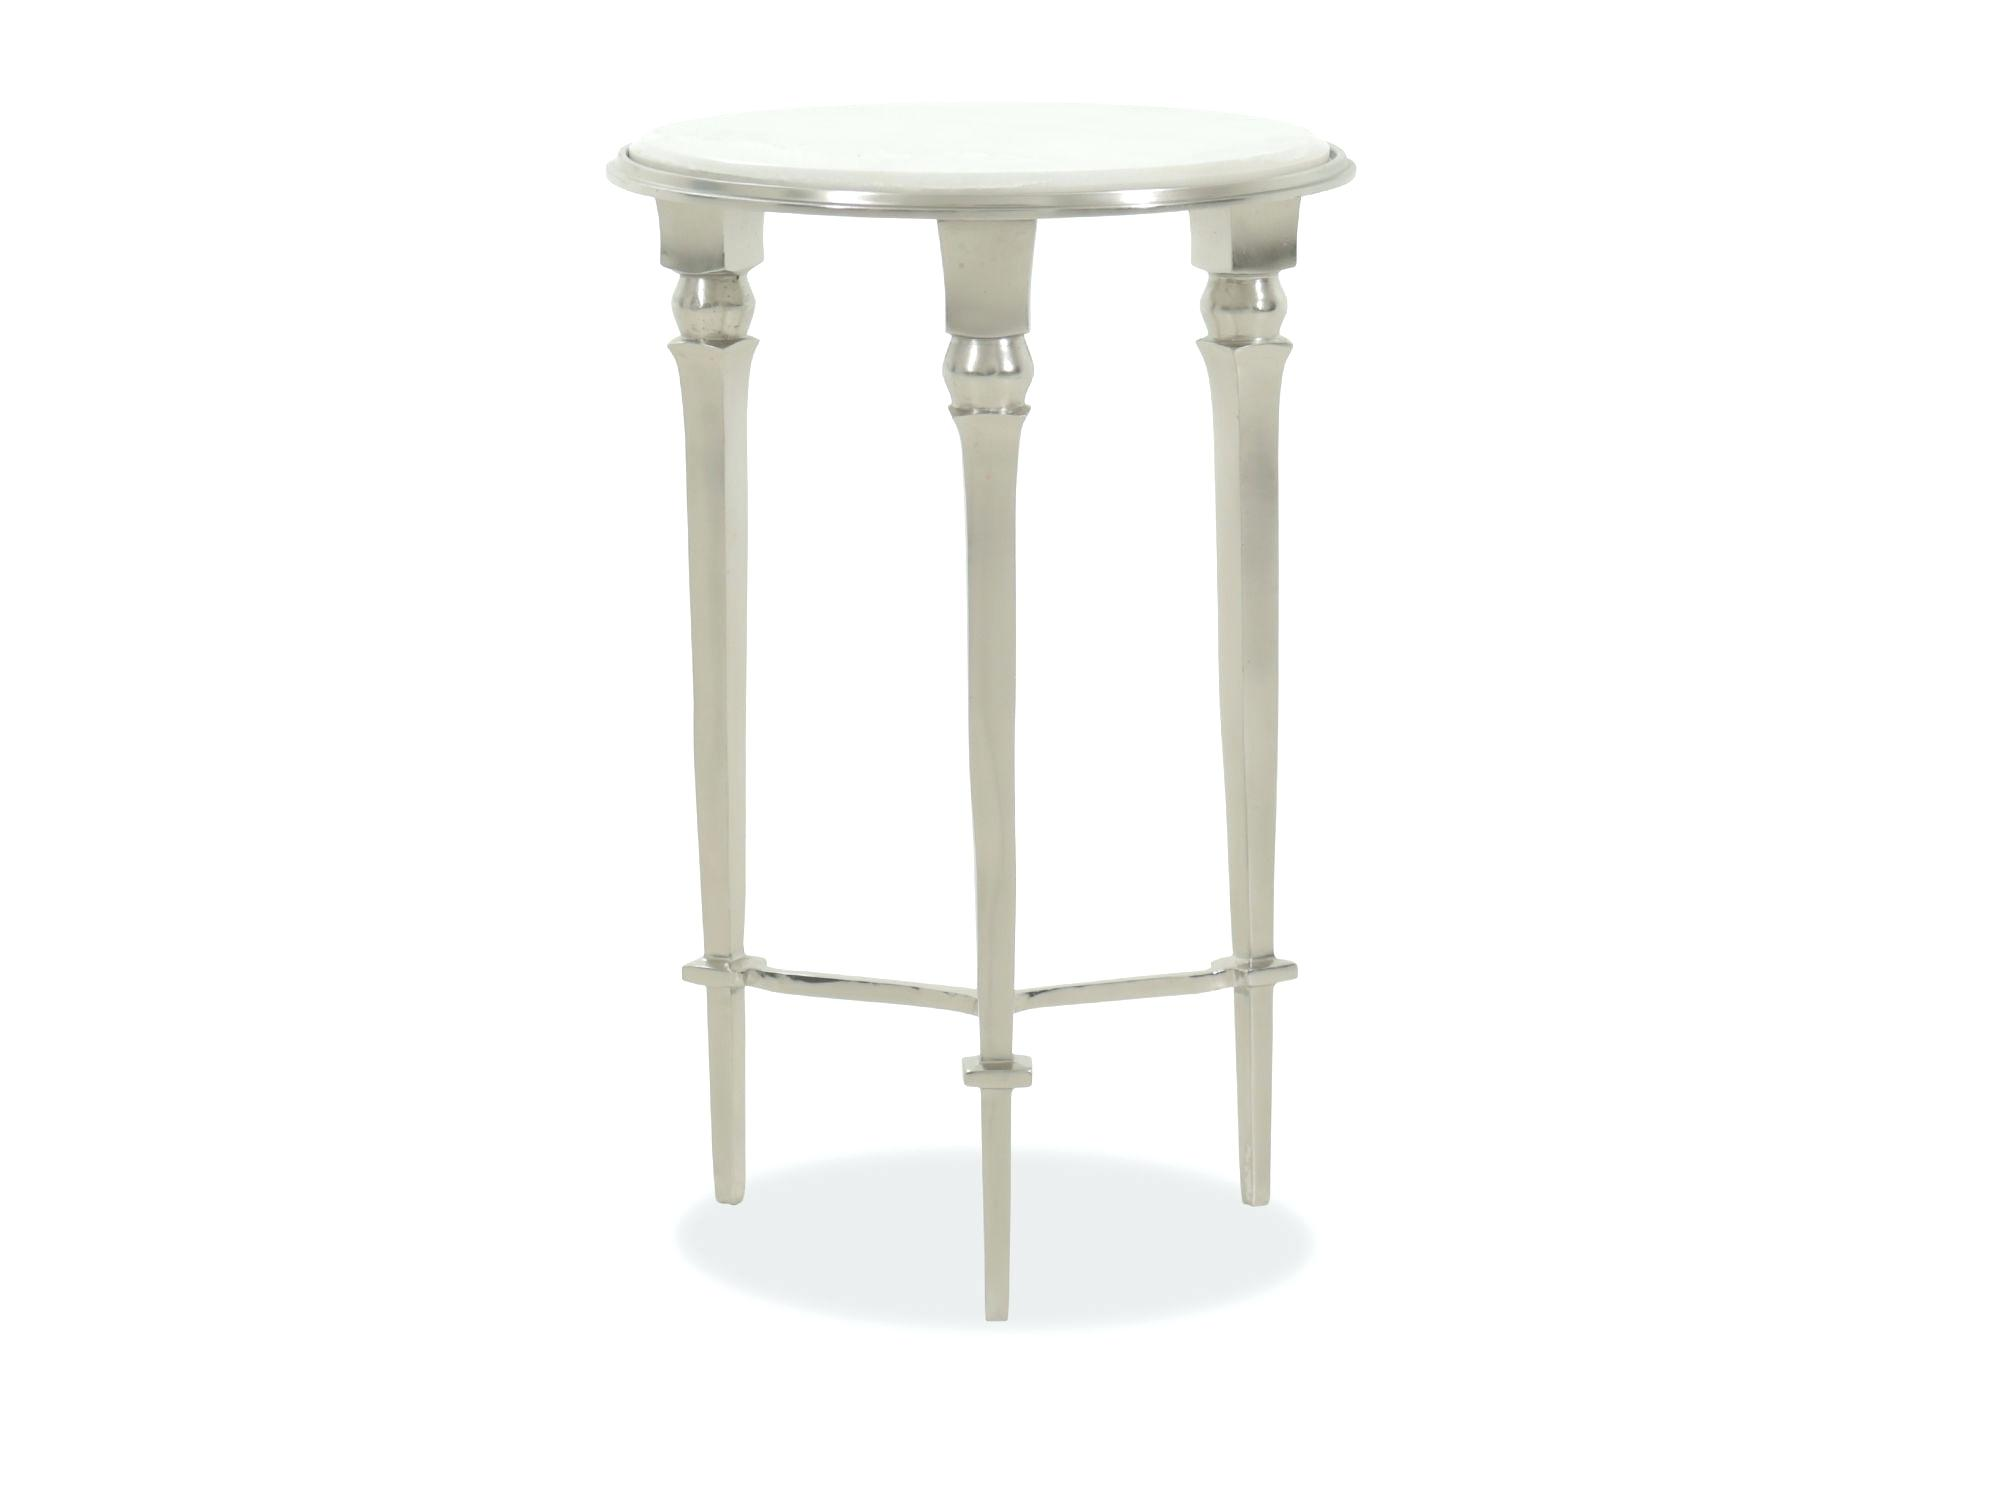 aluminum accent table round three legged silver pottery barn west elm mirror wooden frog instrument ships lantern lamp big chair tablecloths and placemats patio lounge furniture